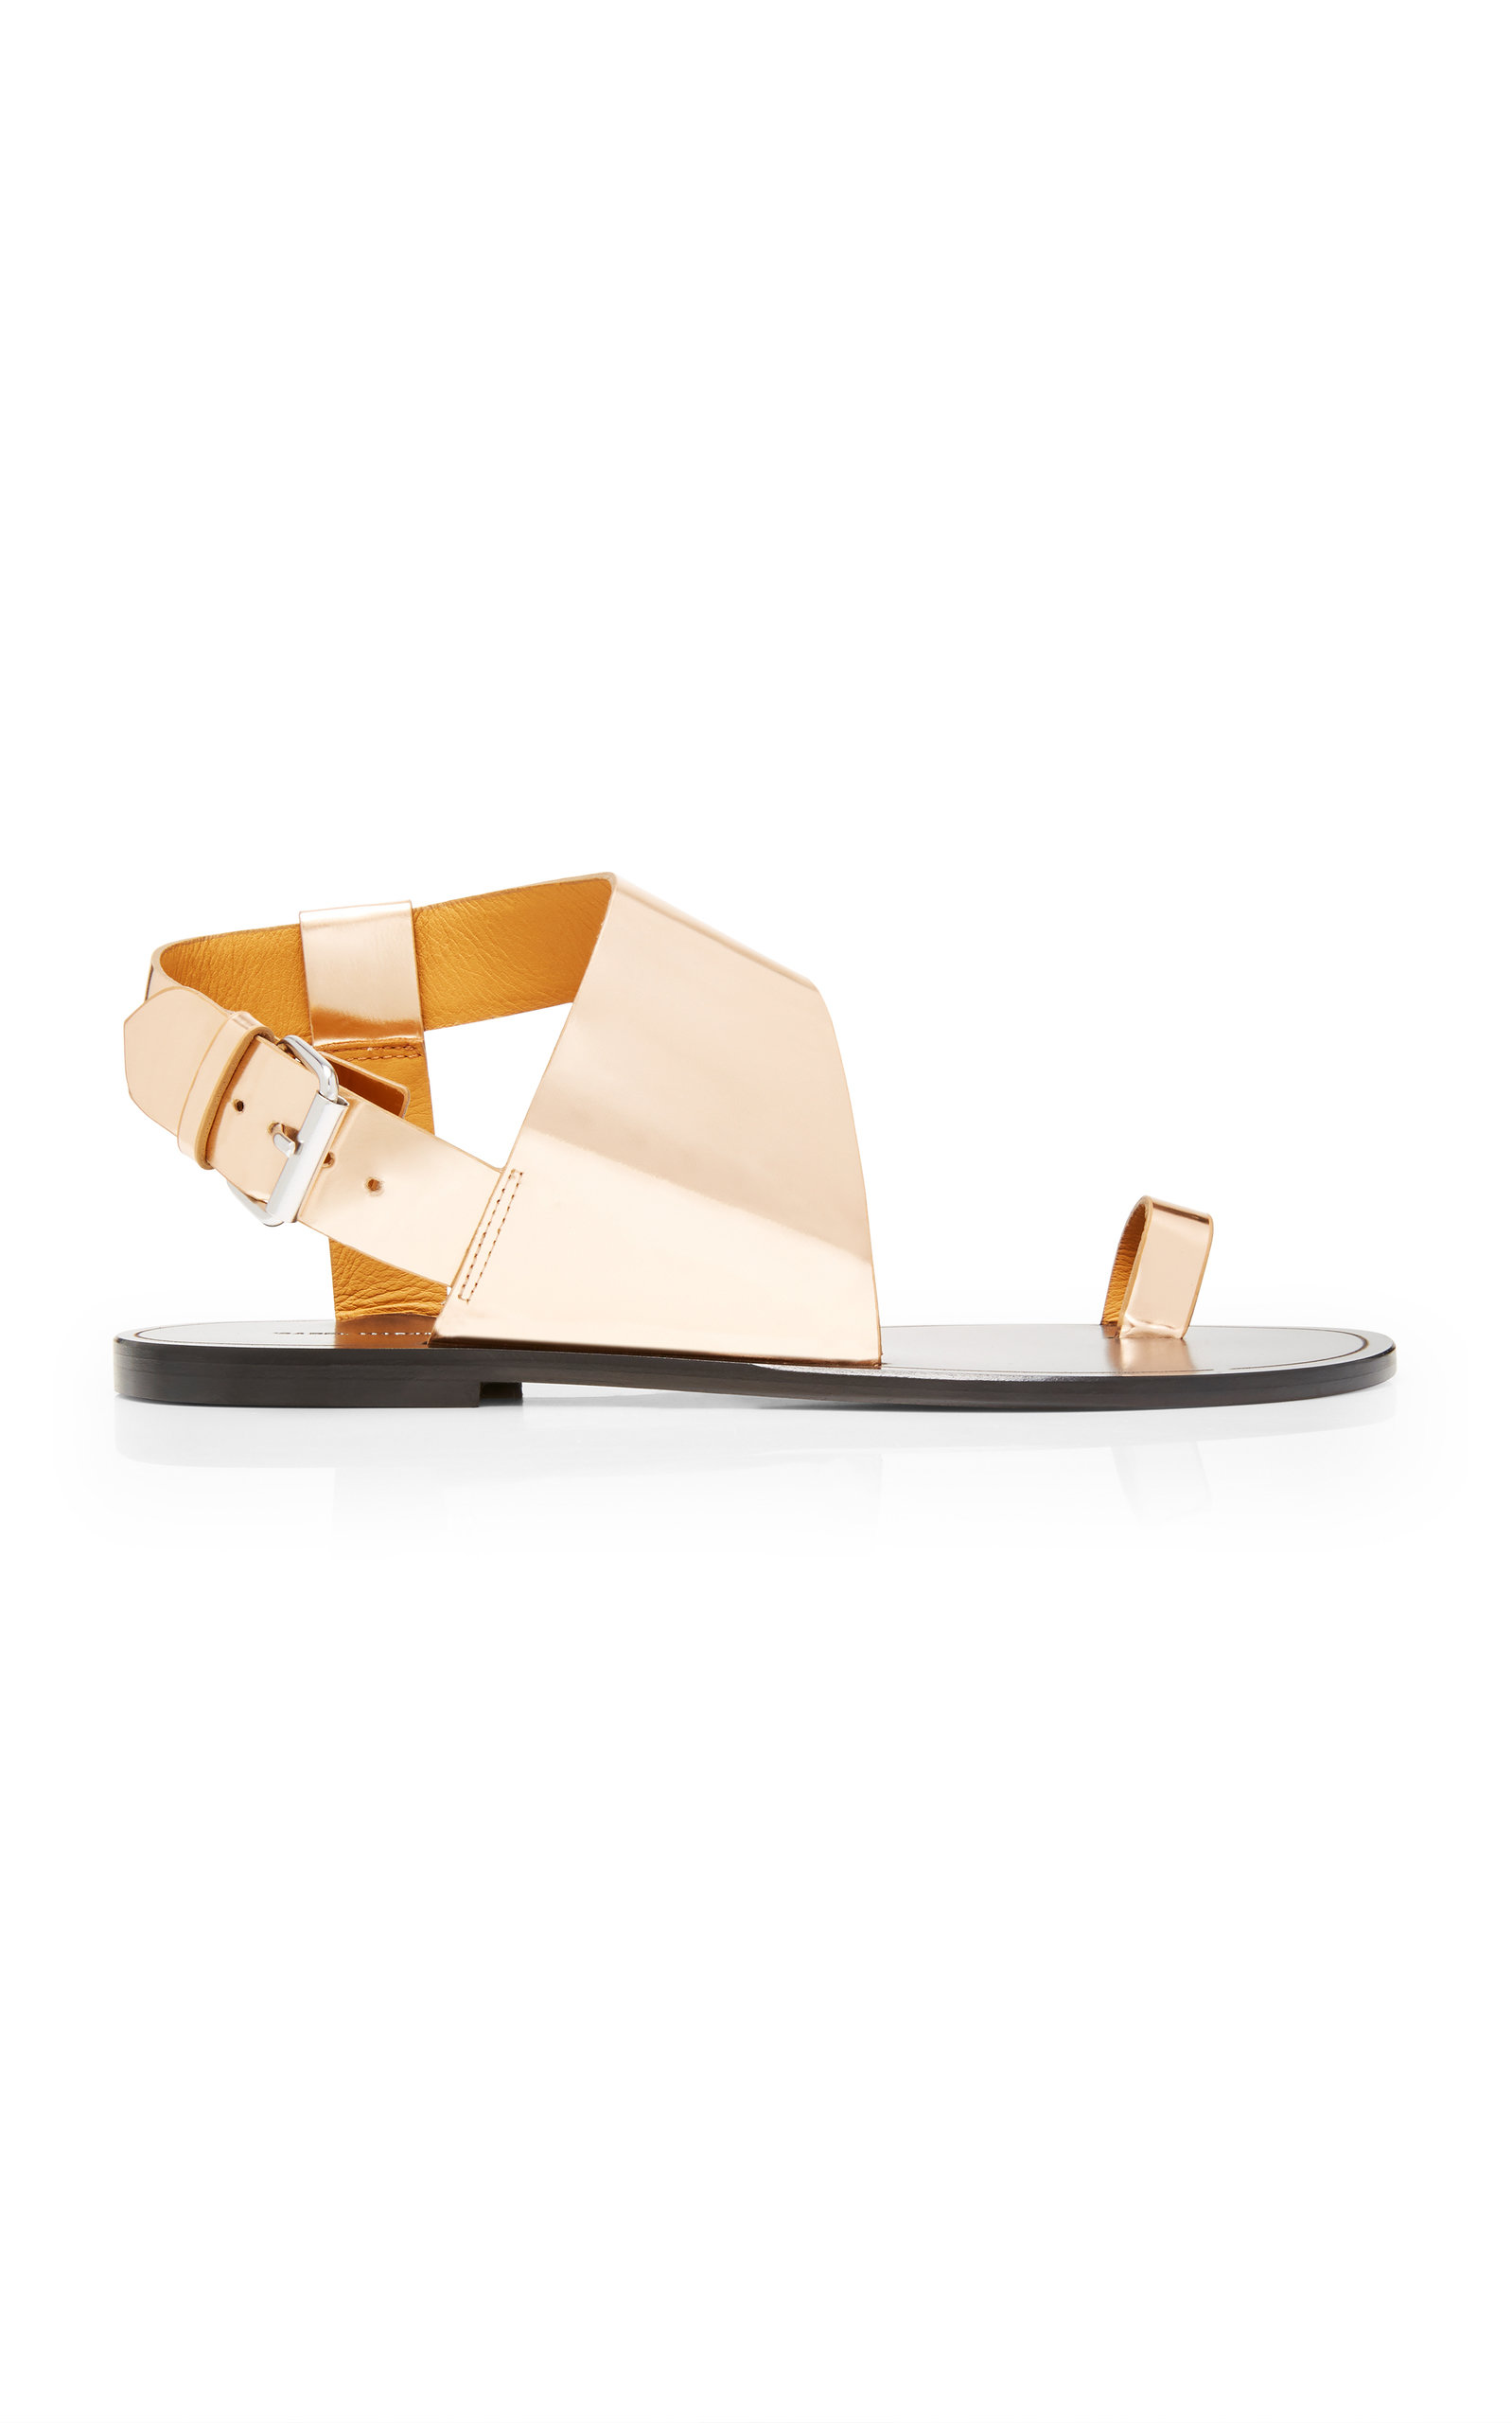 82ad6fc9c08 Jostee Metallic Leather Sandals in Gold